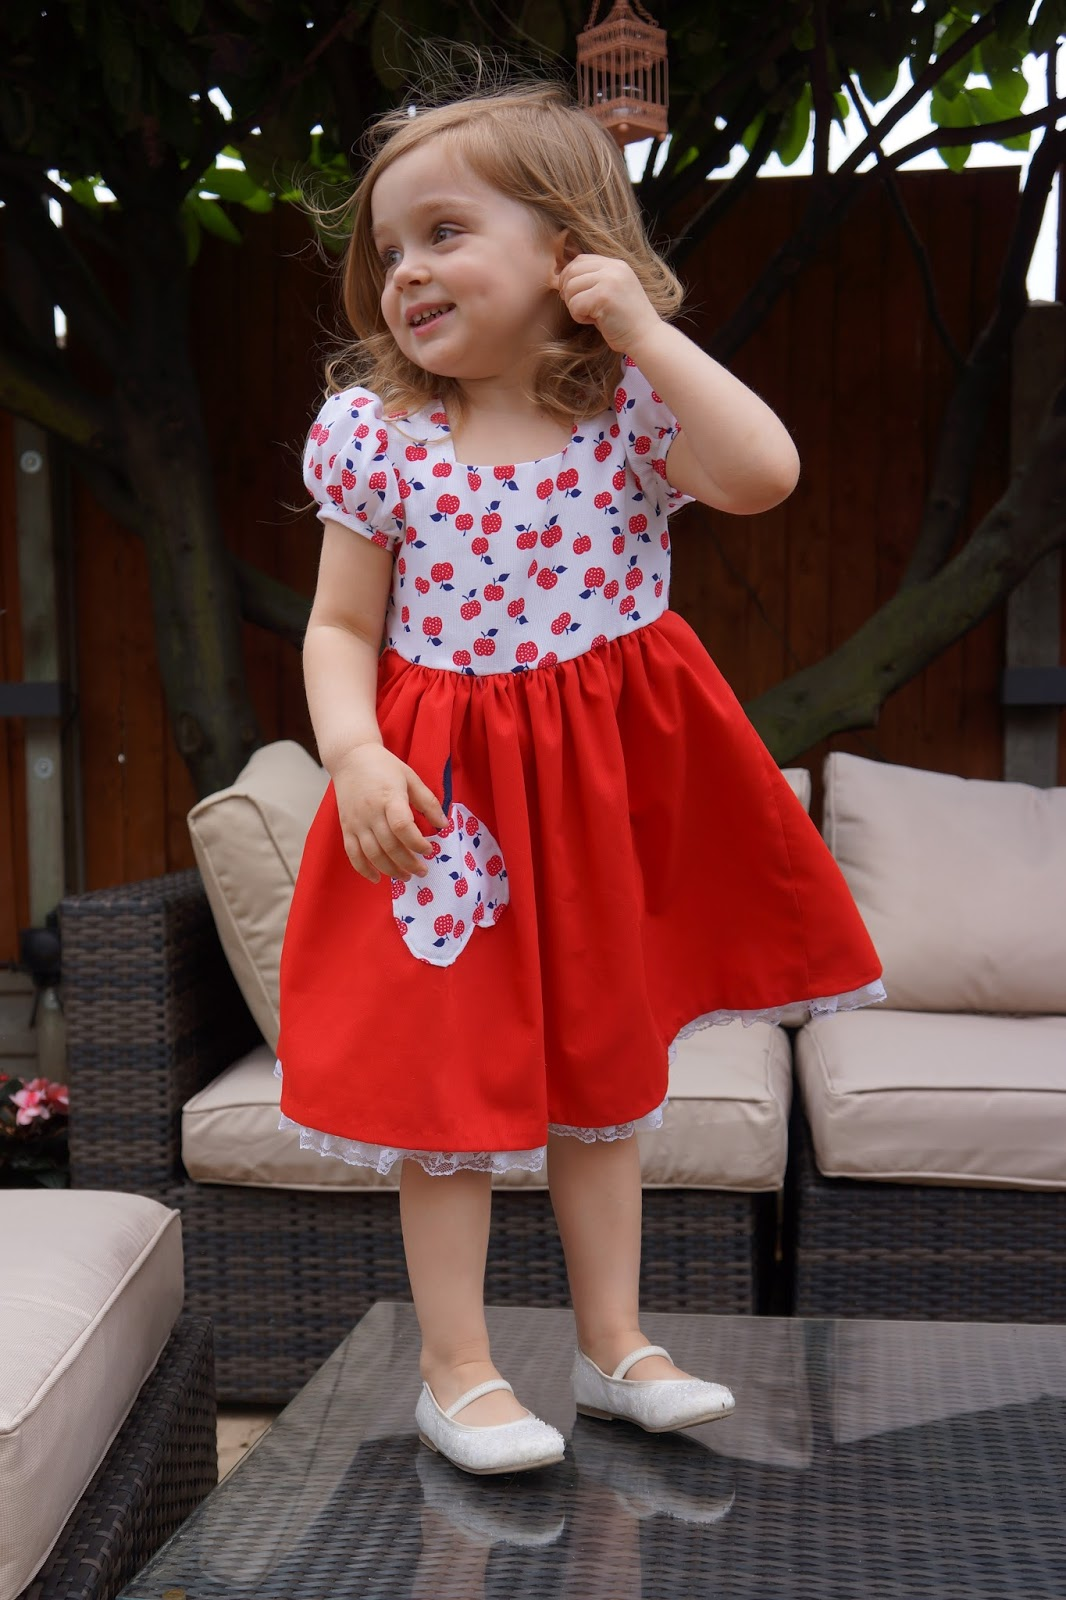 homemade red and white apple dress